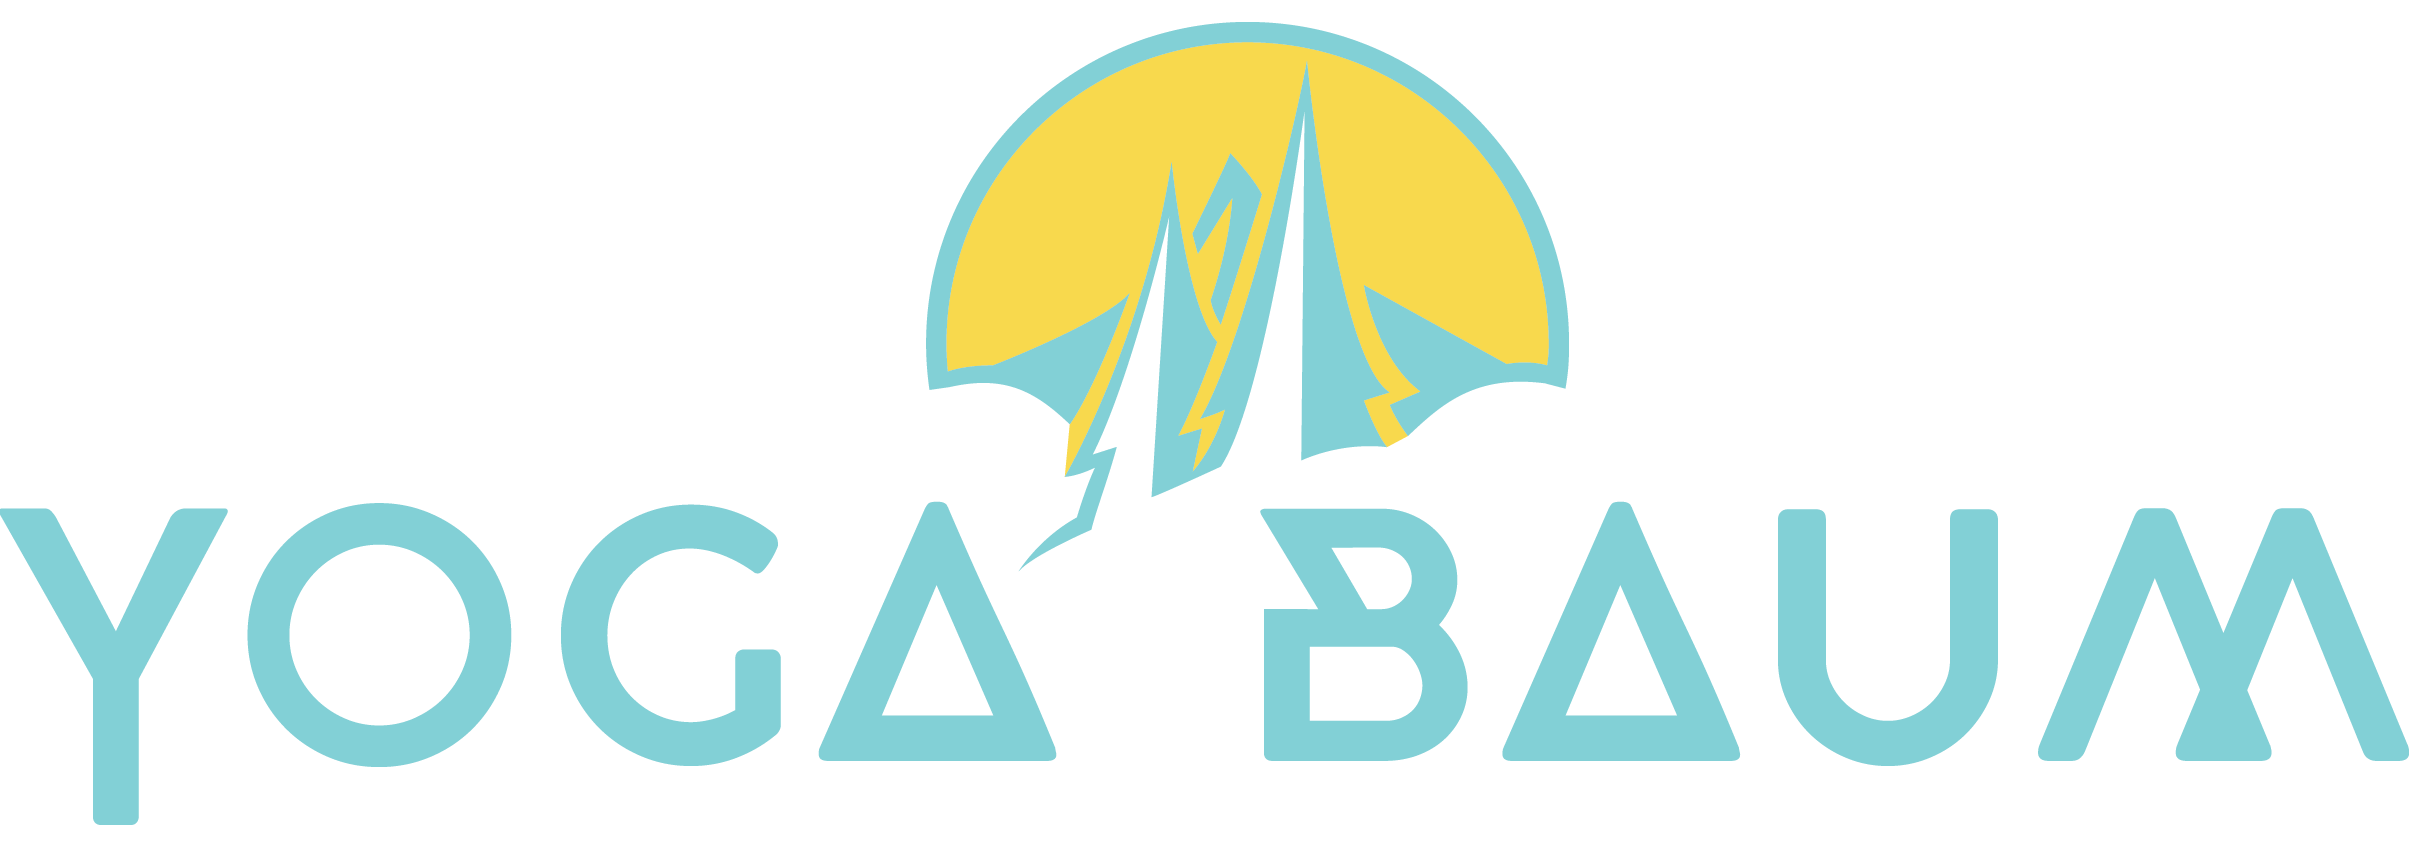 Yoga_Baum_Logo_Color(blue and yellow)_large.png